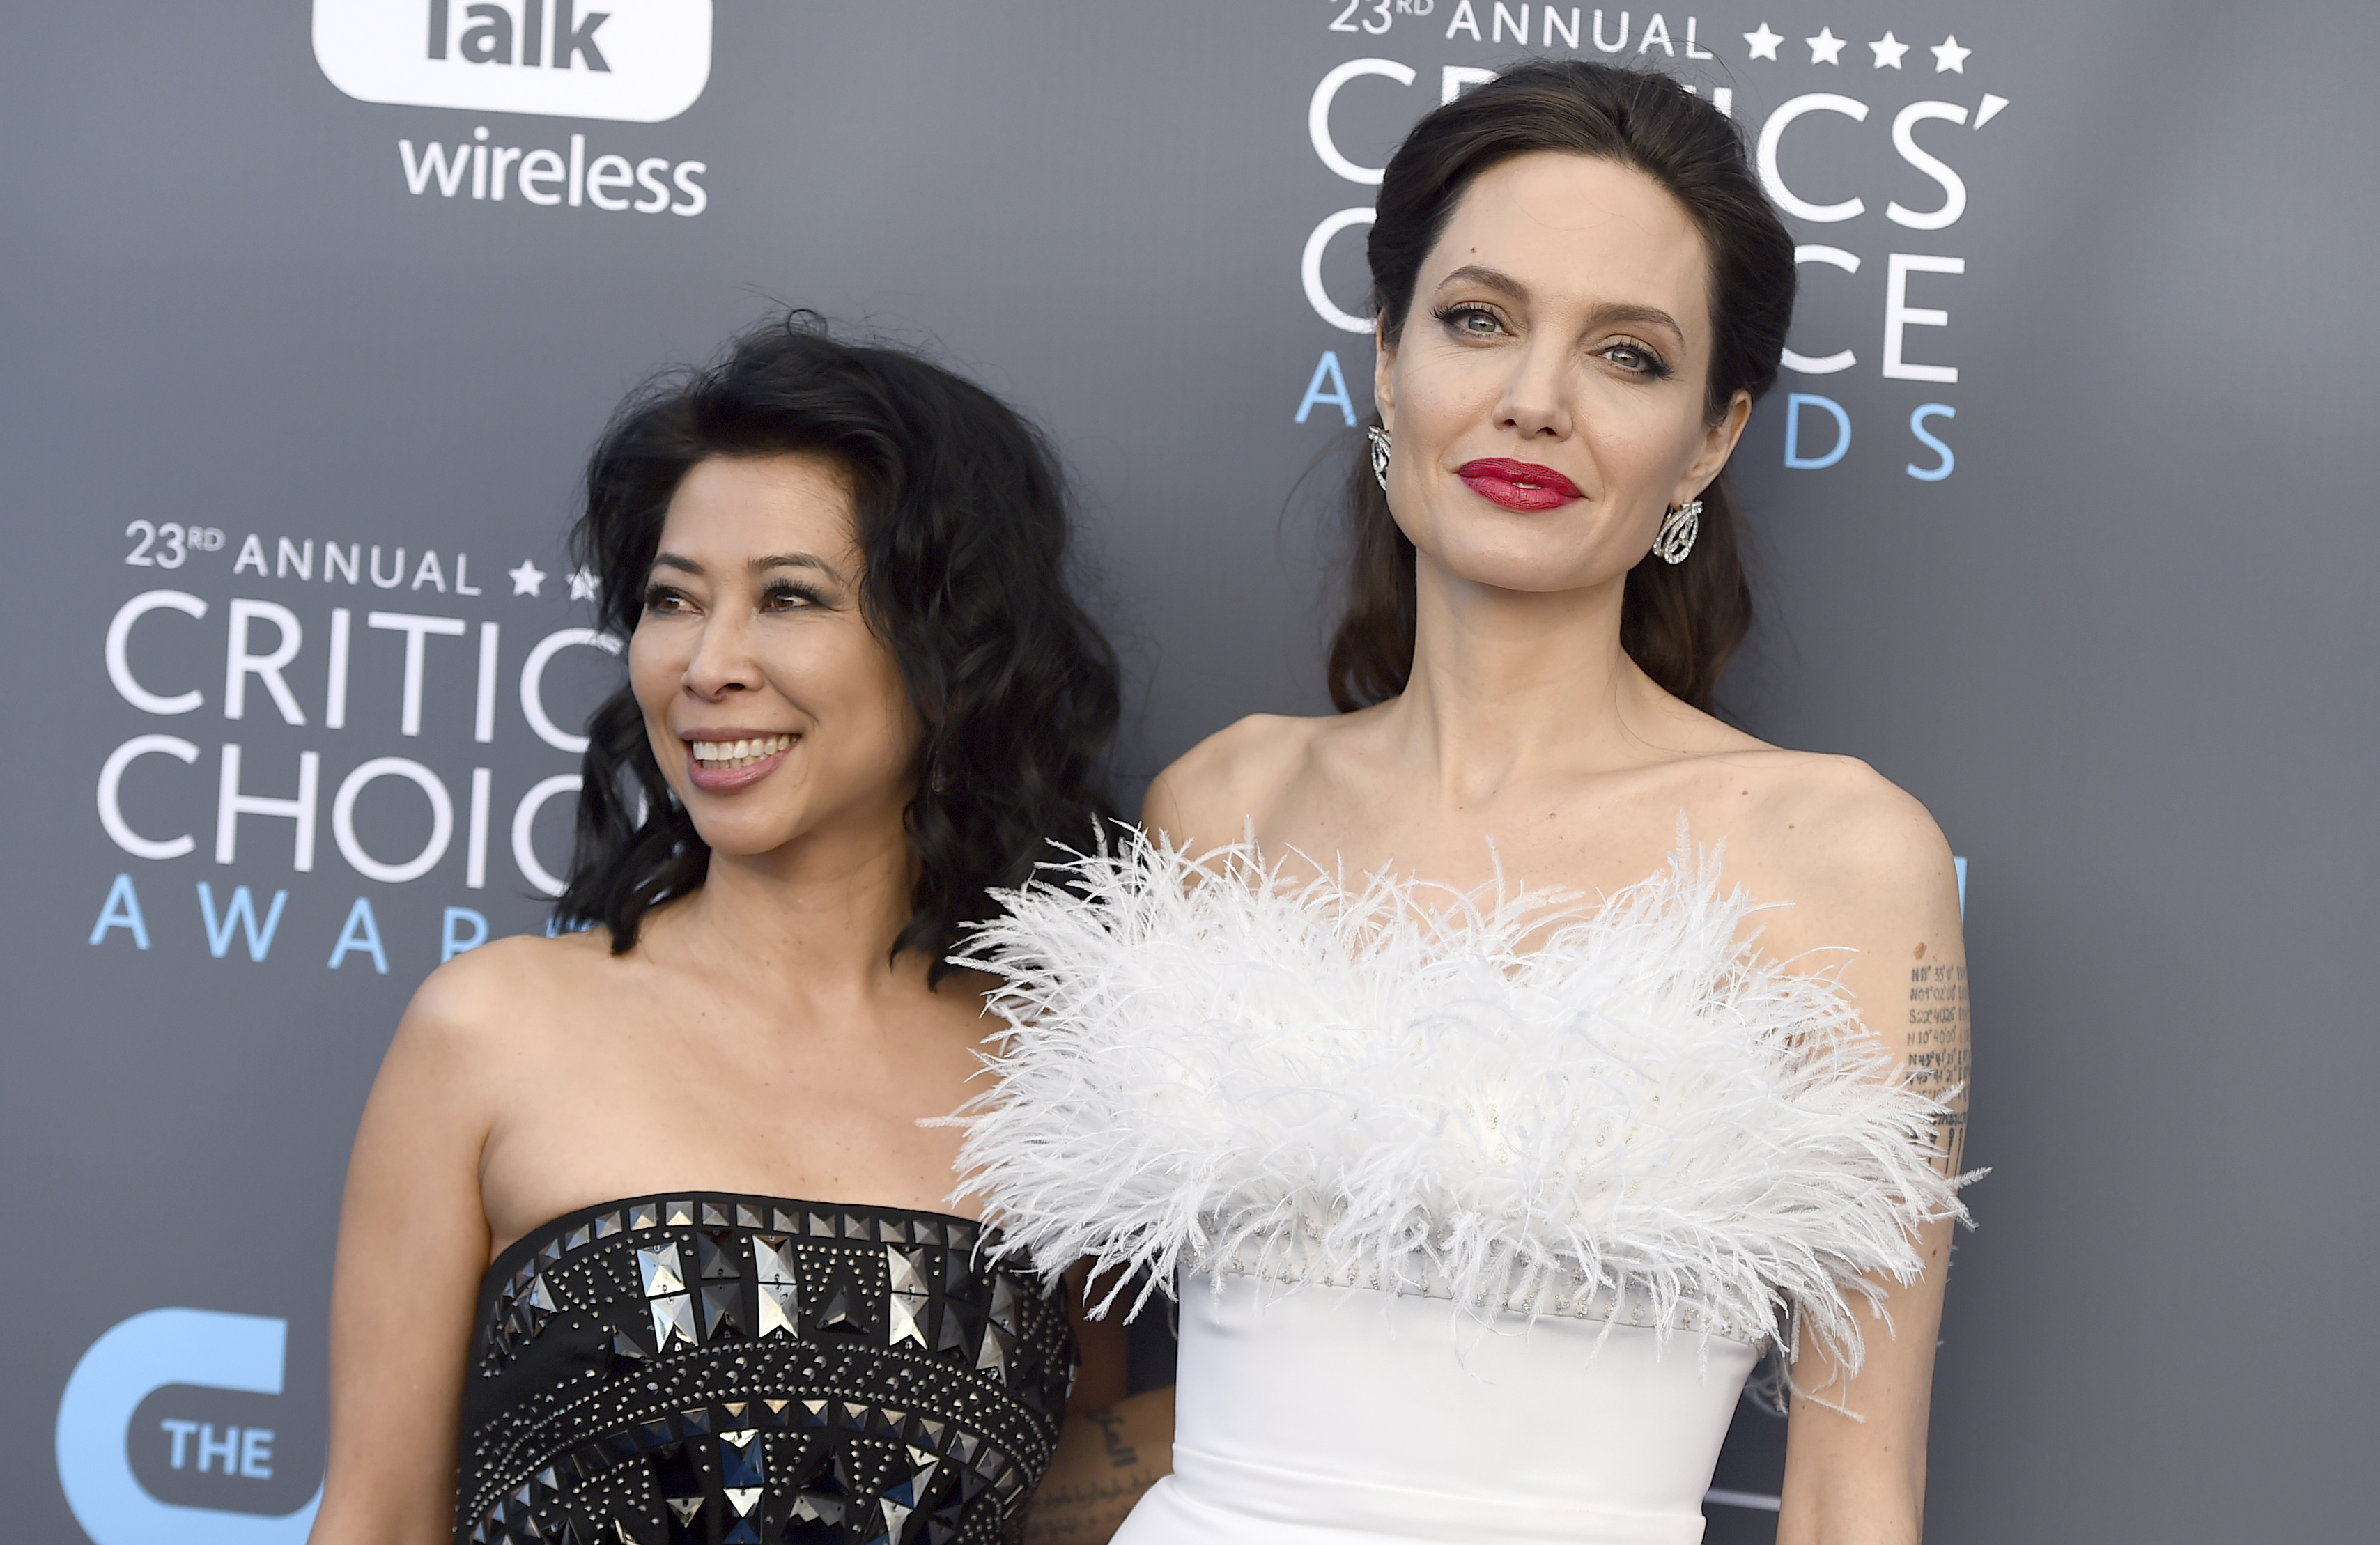 <div class='meta'><div class='origin-logo' data-origin='AP'></div><span class='caption-text' data-credit='Jordan Strauss/Invision/AP'>Loung Ung, left, and Angelina Jolie arrive at the 23rd annual Critics' Choice Awards at the Barker Hangar on Thursday, Jan. 11, 2018, in Santa Monica, Calif.</span></div>